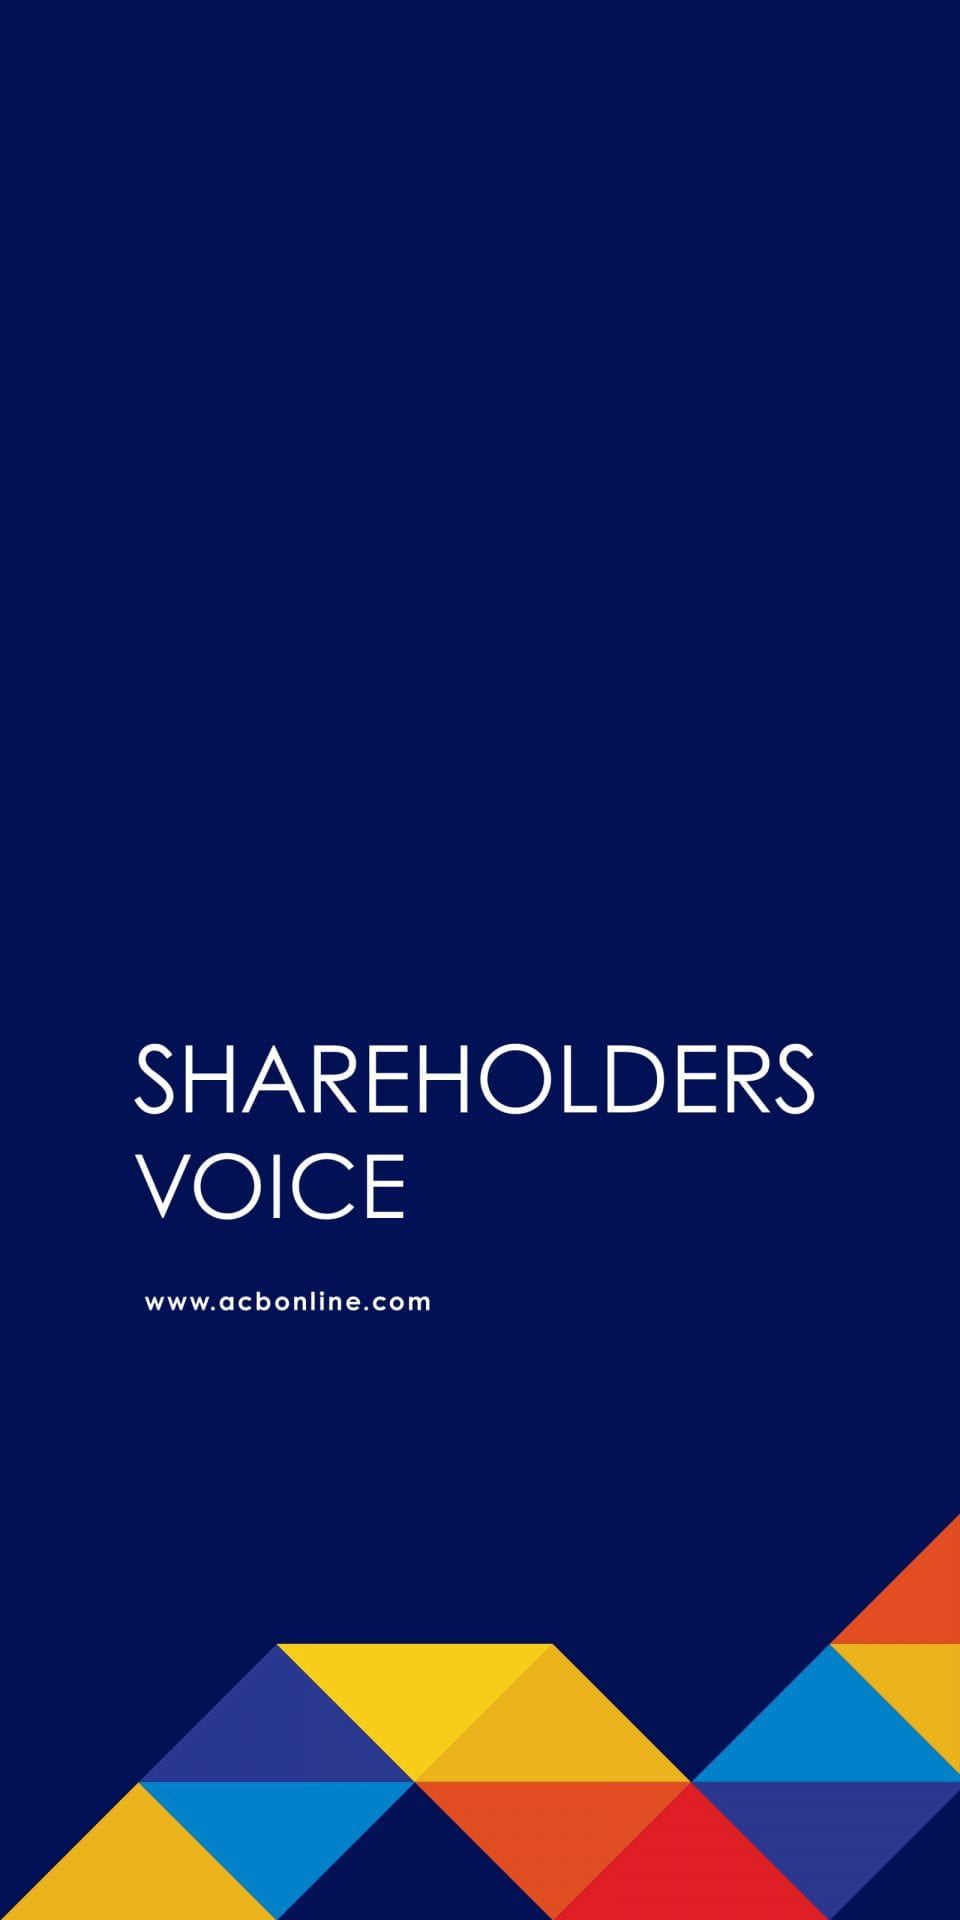 ACB_SHAREHOLDERS_VOICE-1-scaled